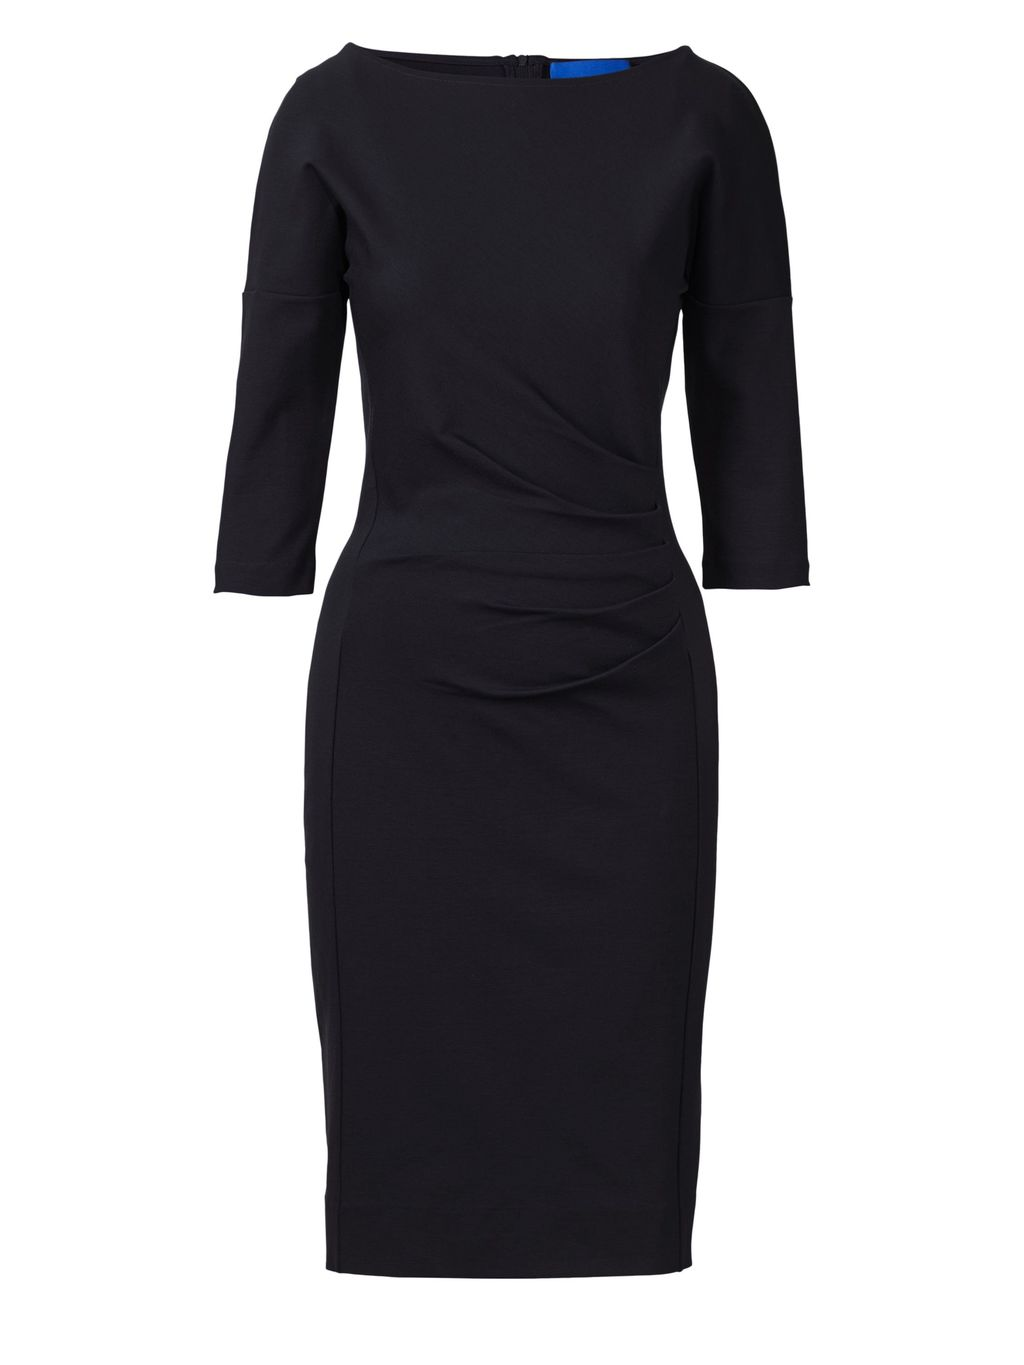 Miracle Dress, Black - style: shift; neckline: slash/boat neckline; fit: tailored/fitted; pattern: plain; predominant colour: black; occasions: evening, work, creative work; length: just above the knee; fibres: cotton - 100%; sleeve length: 3/4 length; sleeve style: standard; texture group: cotton feel fabrics; pattern type: fabric; season: s/s 2016; wardrobe: investment